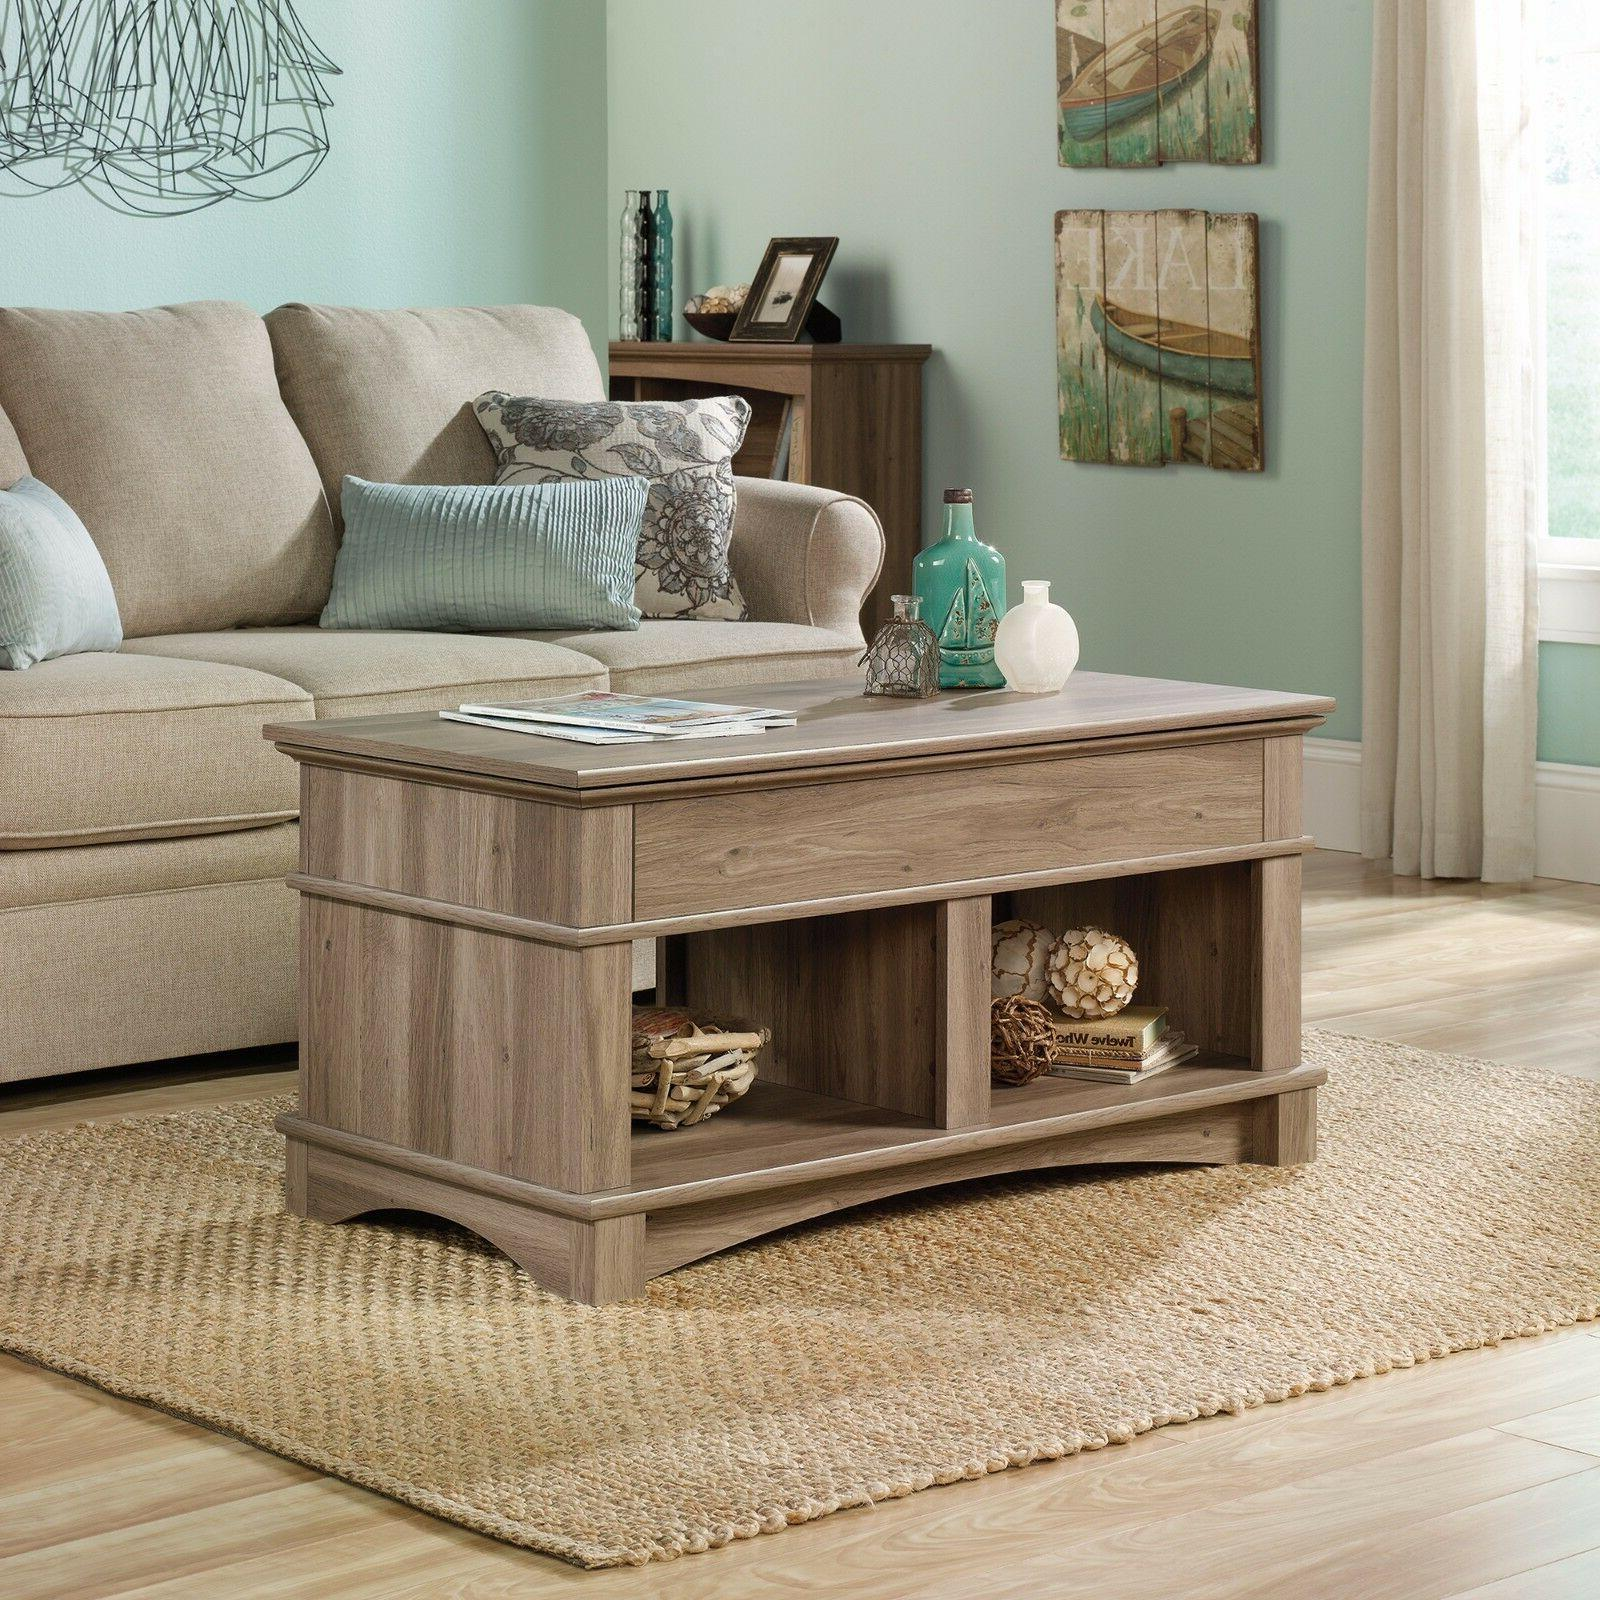 Lift Top Coffee Table - Salt Oak Finish - Harbor View collec